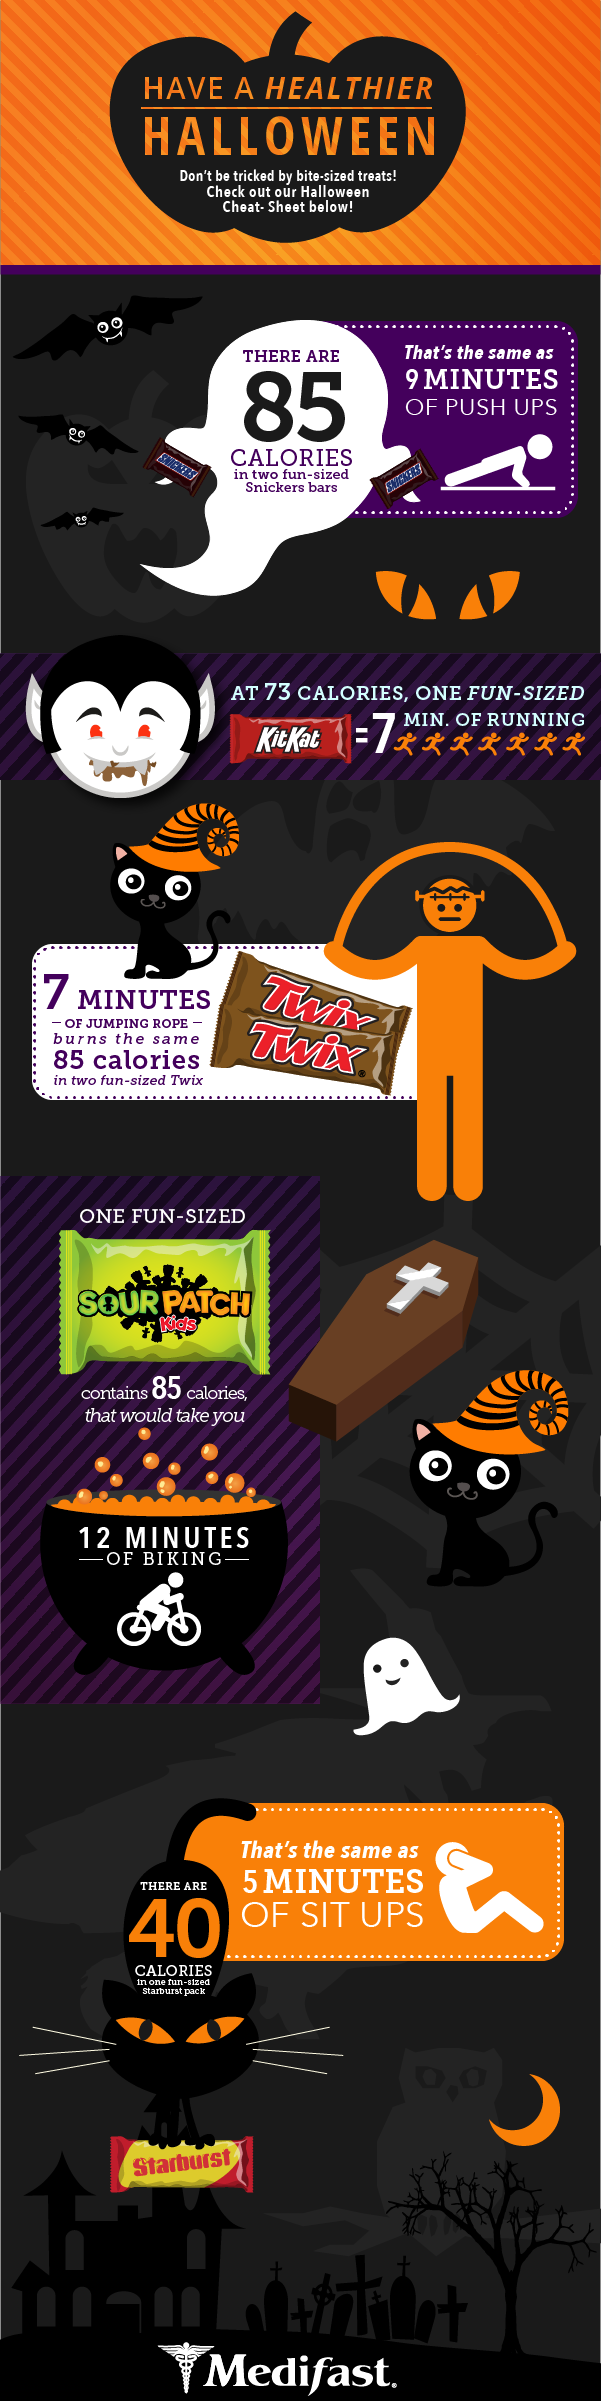 Have_20a_20Healthier_20Halloween.png